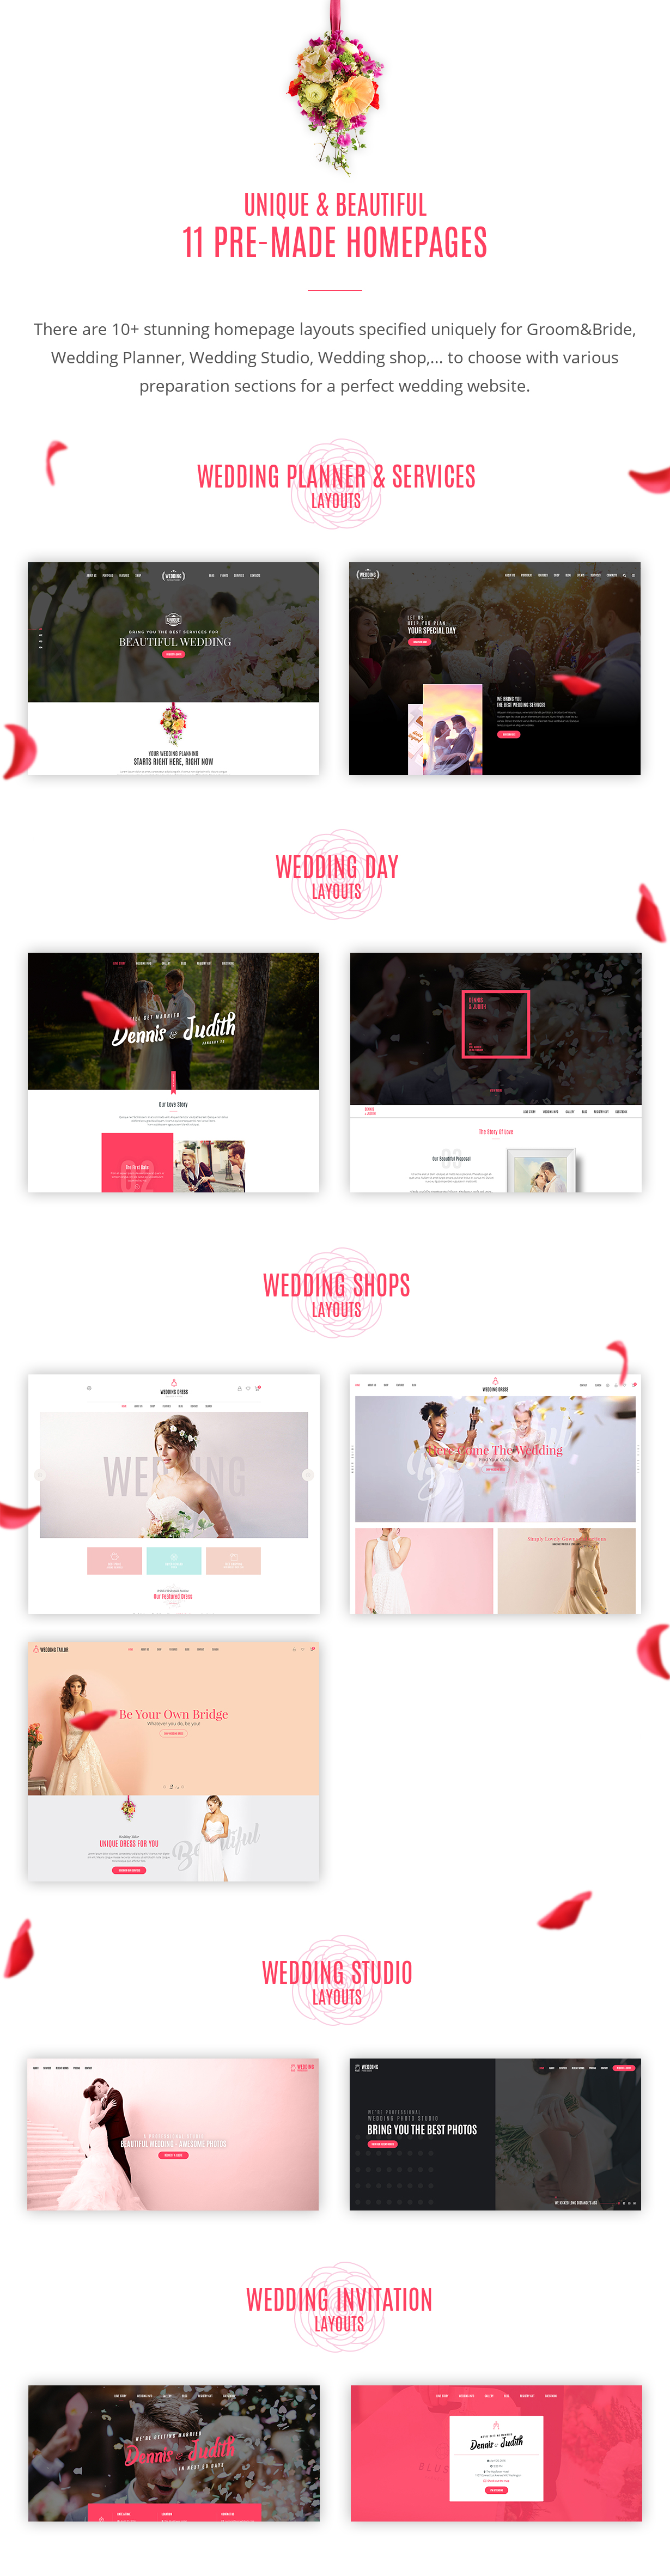 Wedding - All in One WordPress Theme - 4